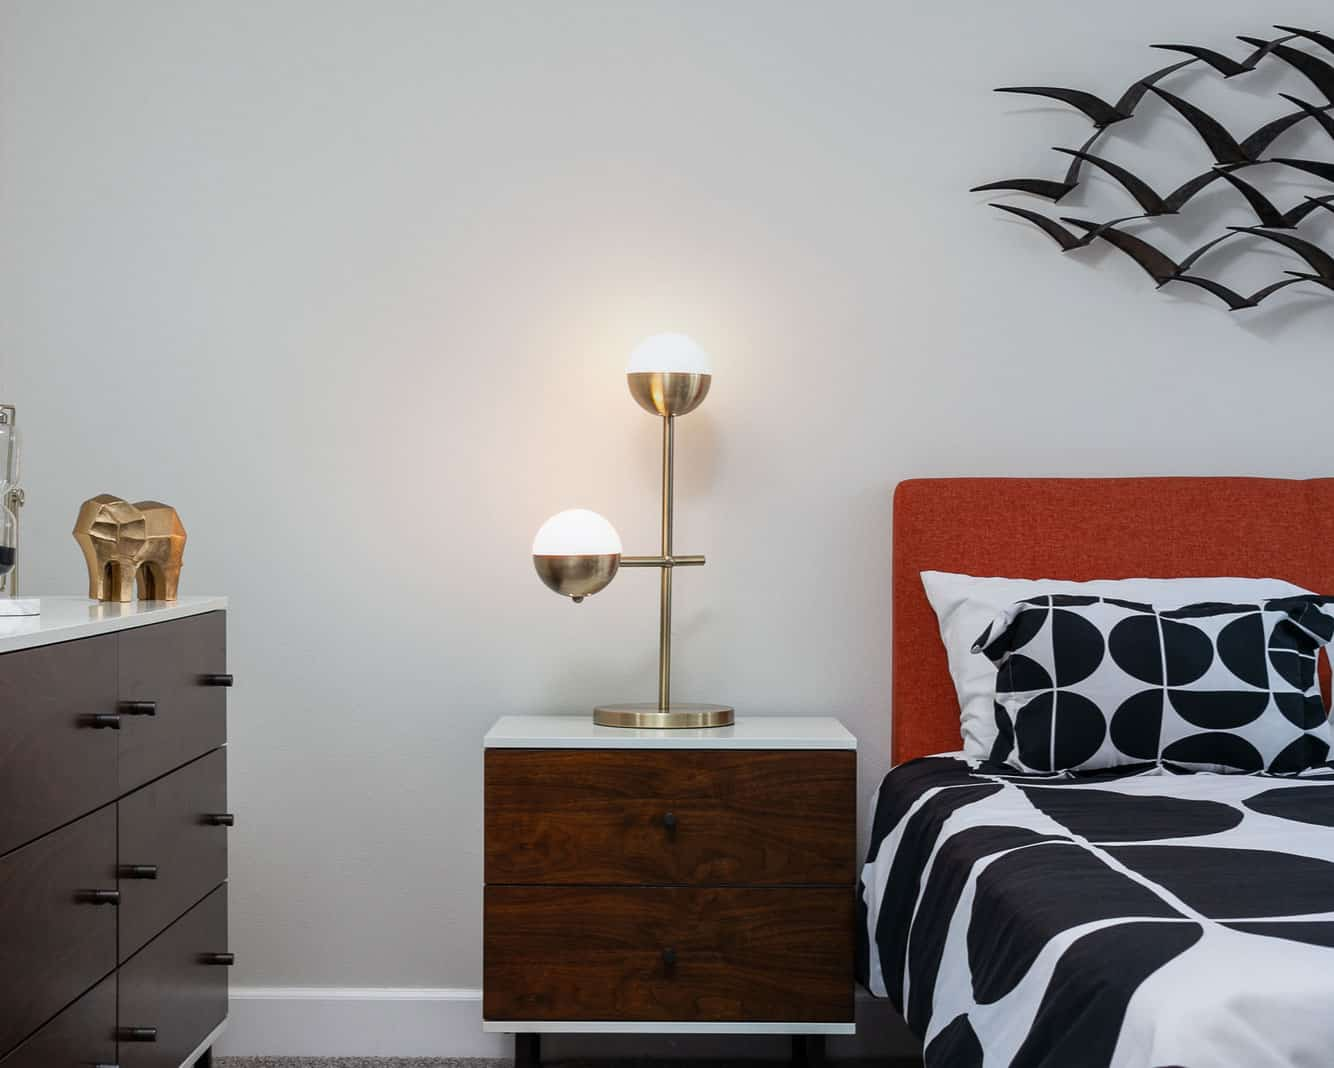 side table with lamp in between cabinet with gold elephant on top and a bed with orange head board, black and white bedding